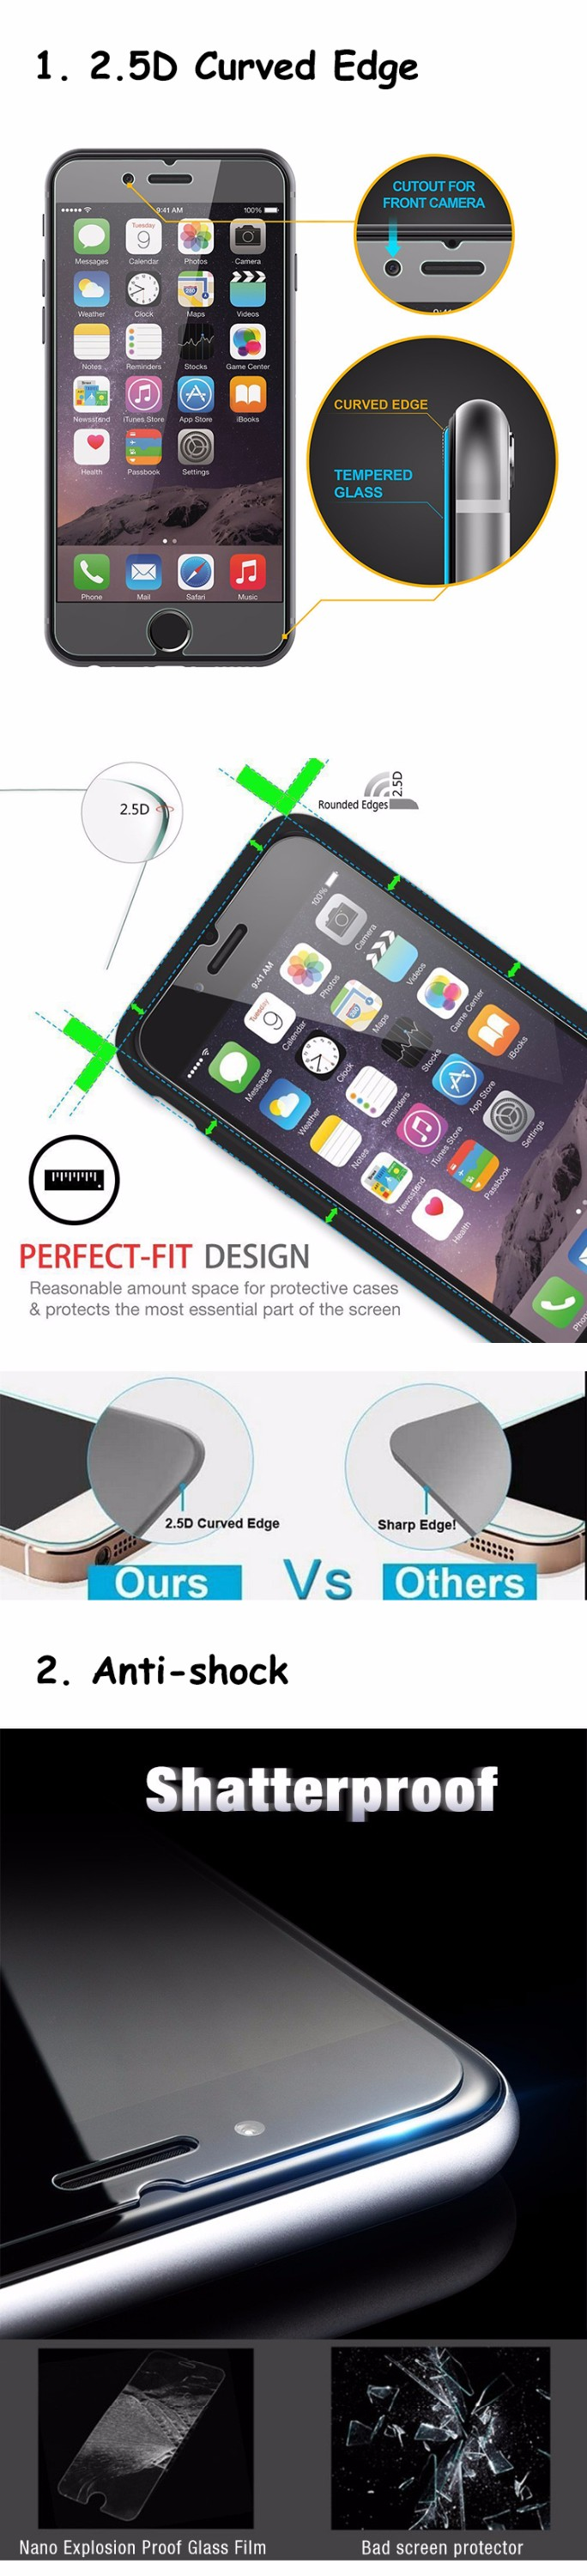 Untra thin full coverage anti-glare 5.5 inch phone tempered glass screen protector for iphone 6 plus